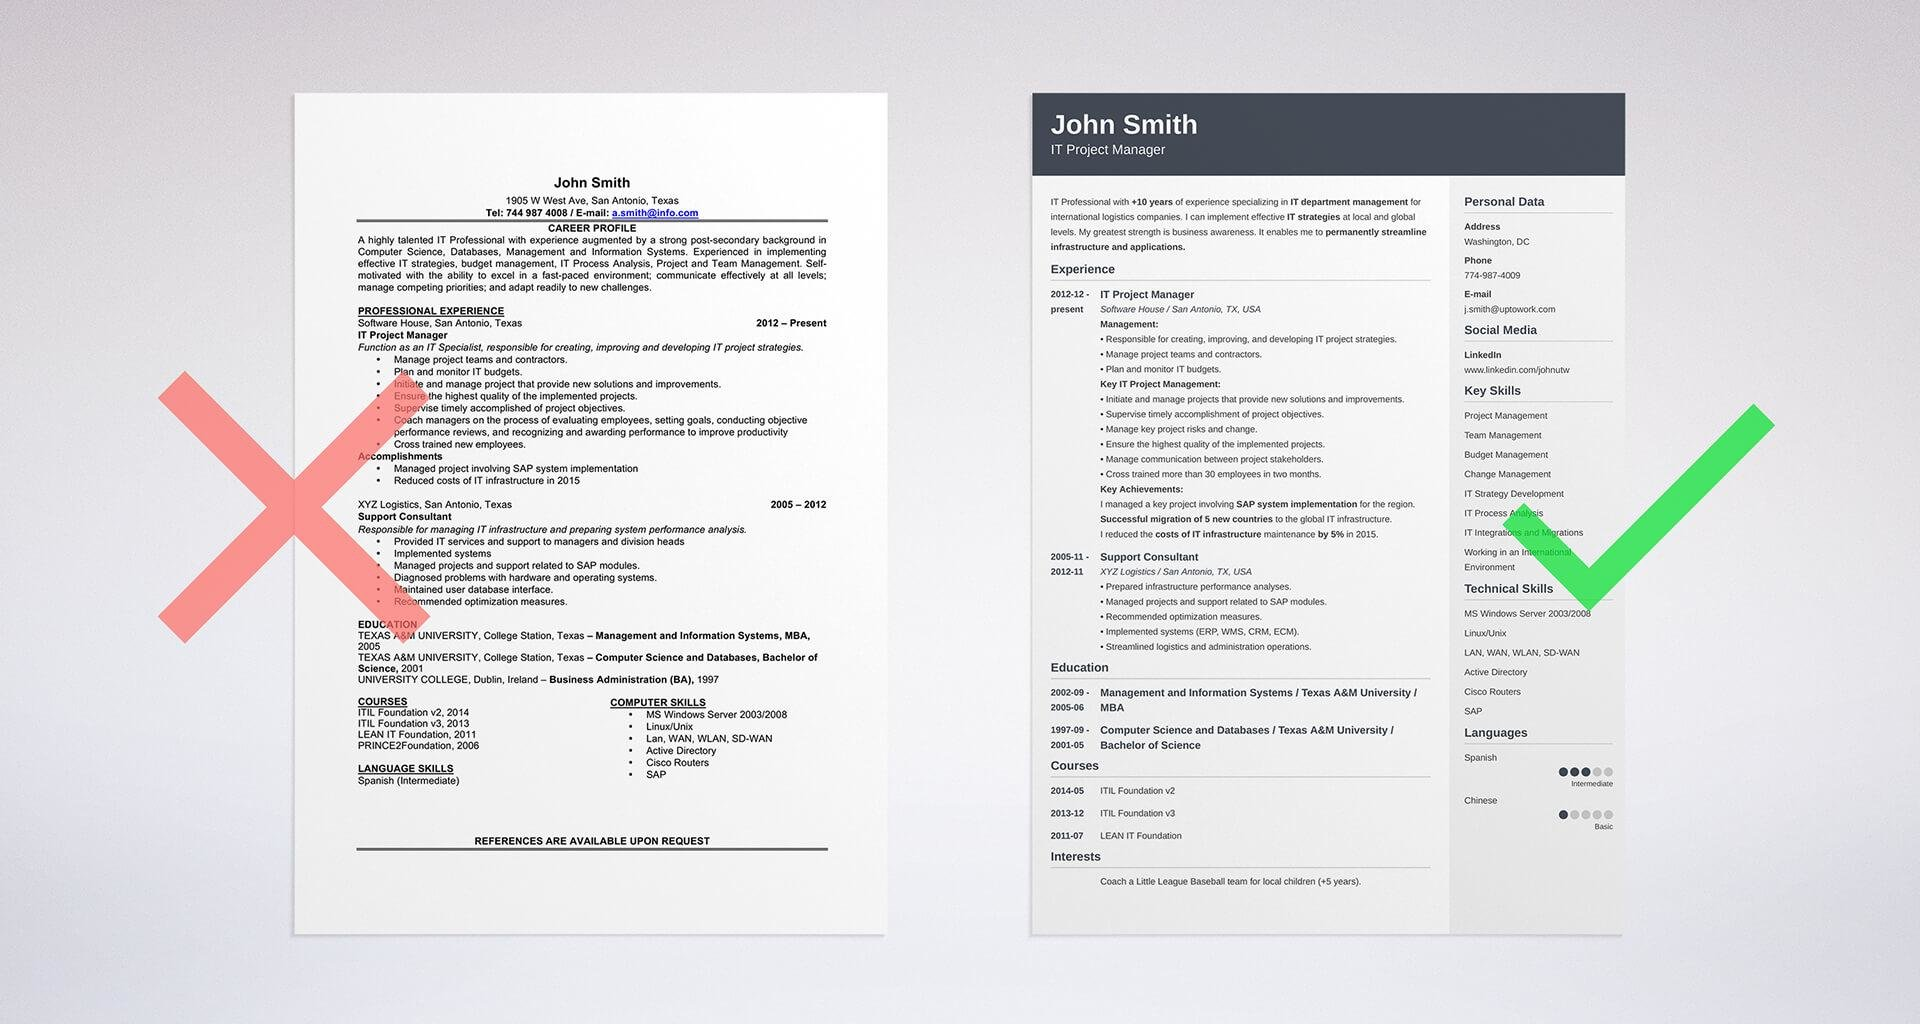 Resume Formatting   Word Or PDF?